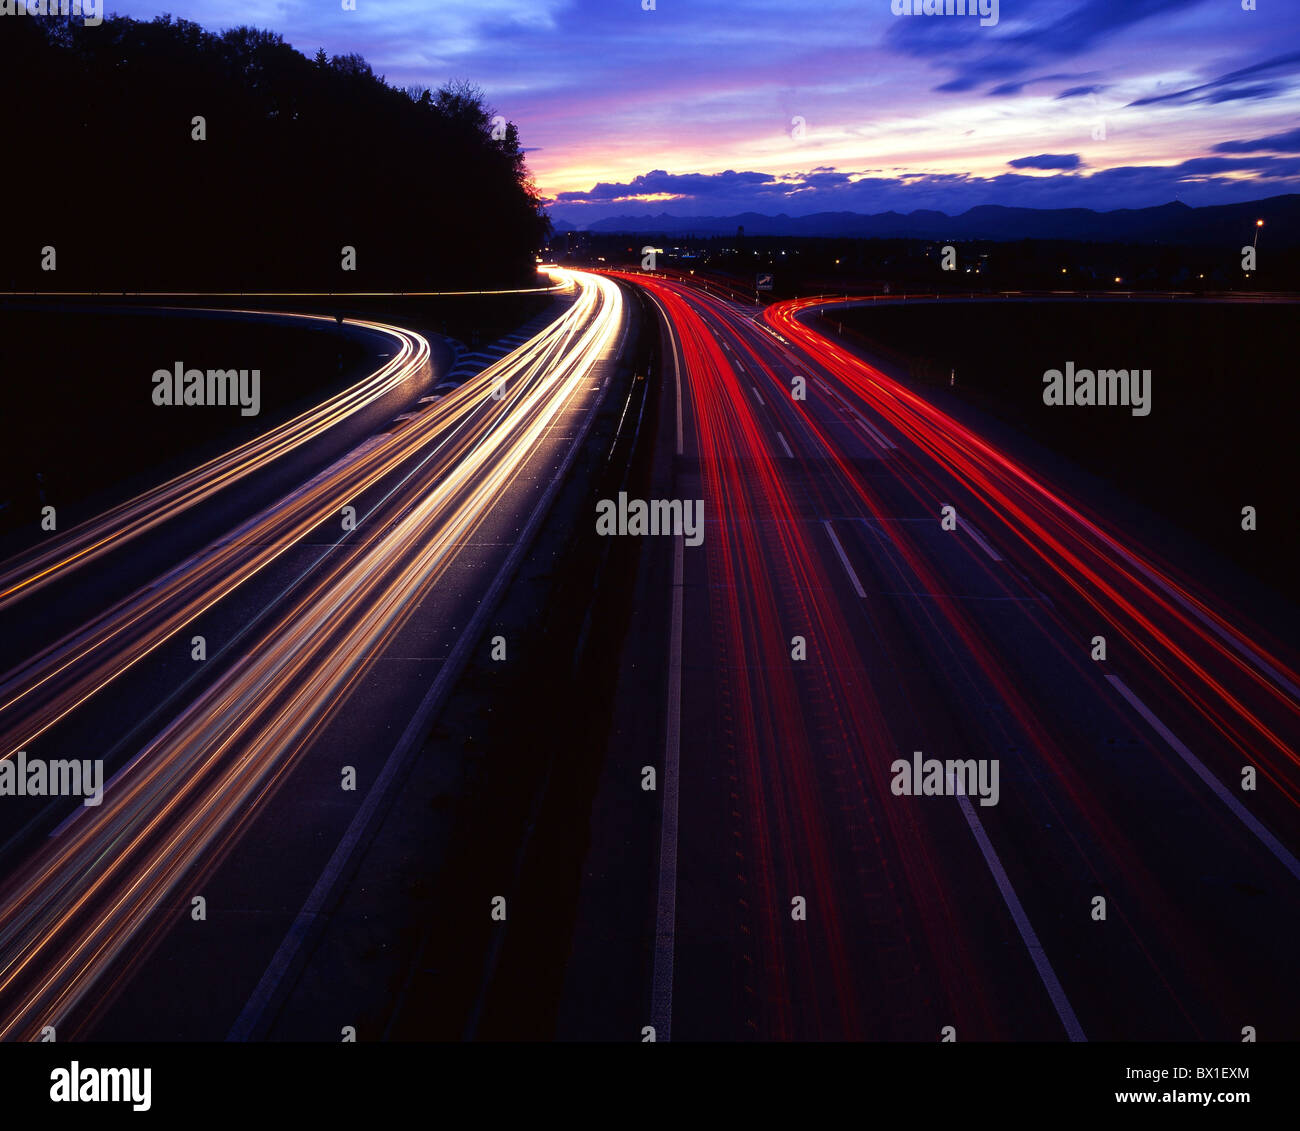 Highway lights light stripes A1 near spring castle canton Aargau Switzerland Europe at night night traffic - Stock Image